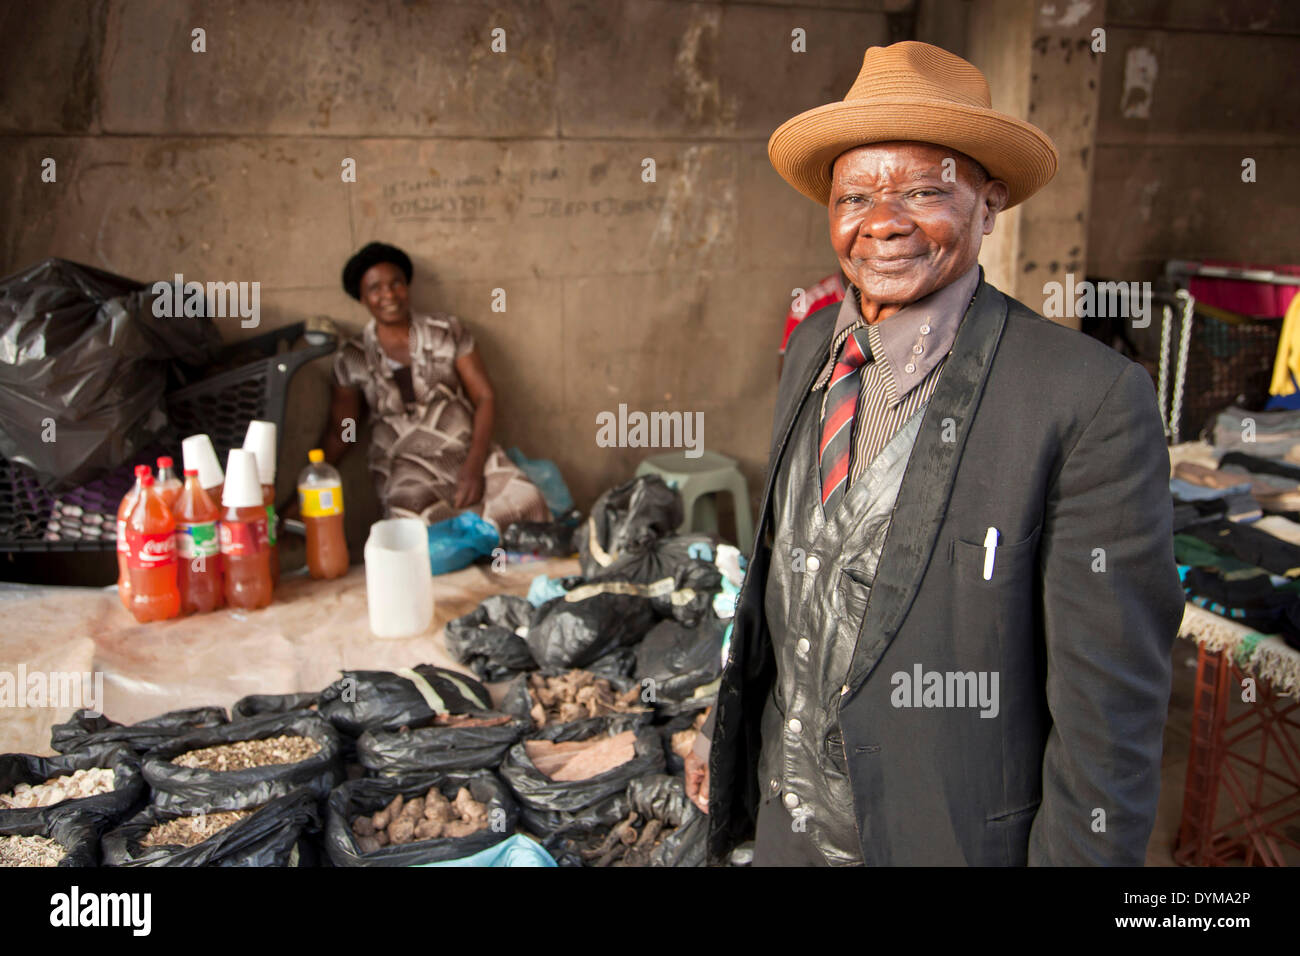 Seller at the market, Johannesburg, Gauteng, South Africa - Stock Image